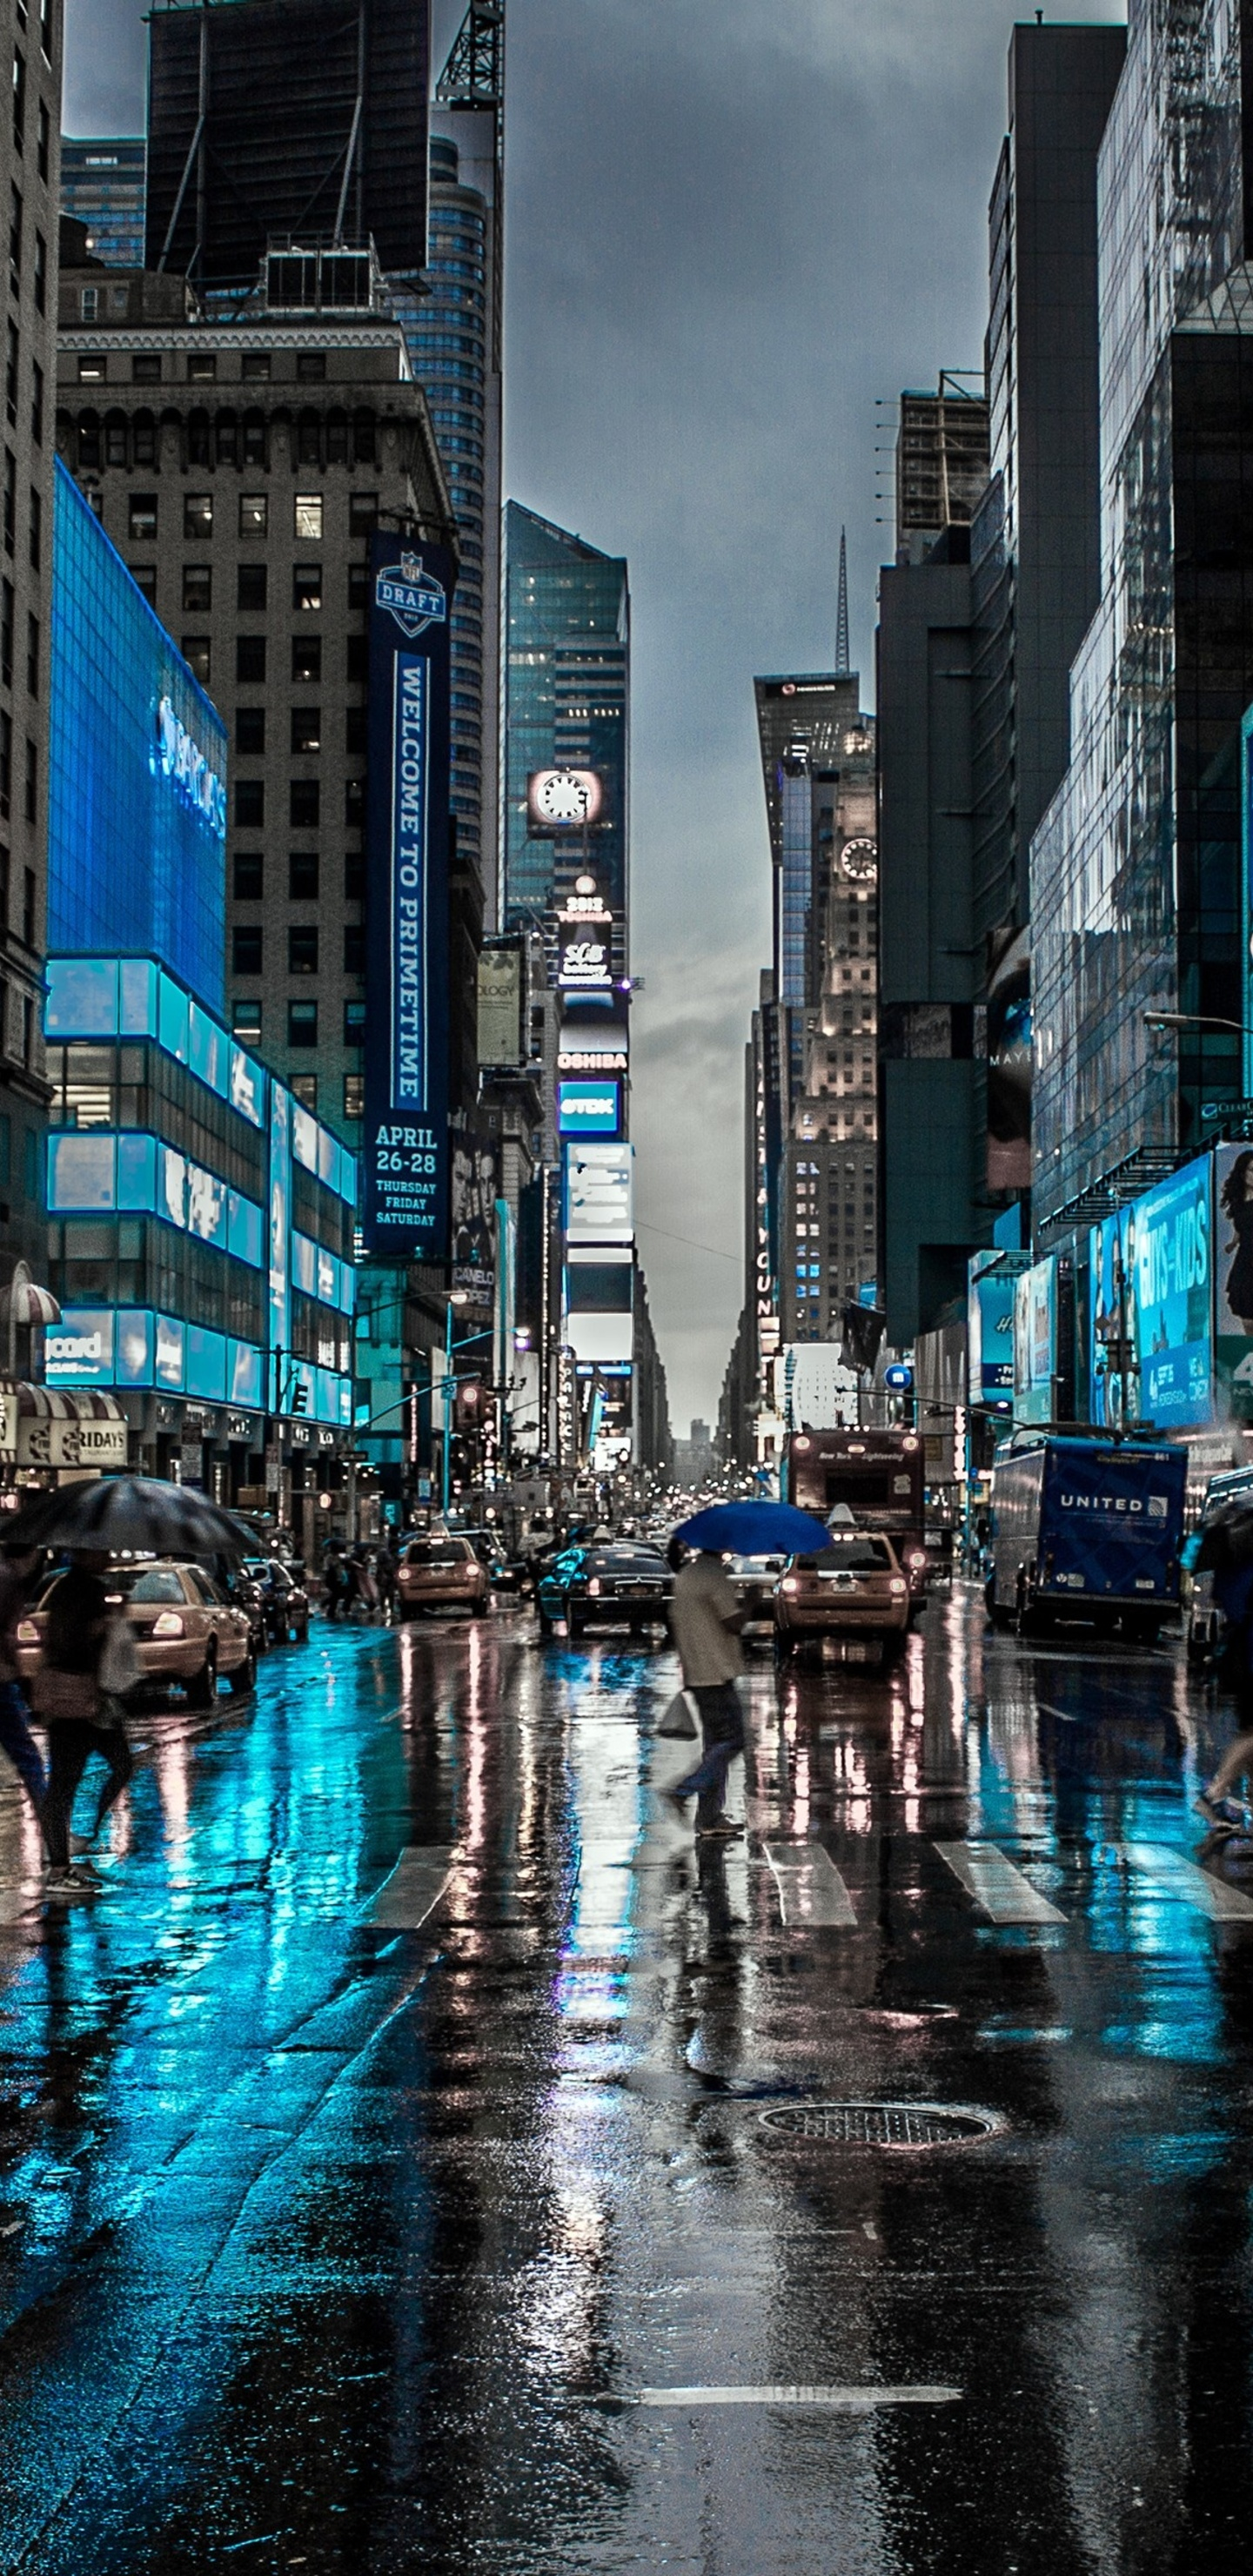 1440x2960 New York City Street Reflection Motion Blur Dark 4k Samsung Galaxy Note 9 8 S9 S8 S8 Qhd Hd 4k Wallpapers Images Backgrounds Photos And Pictures